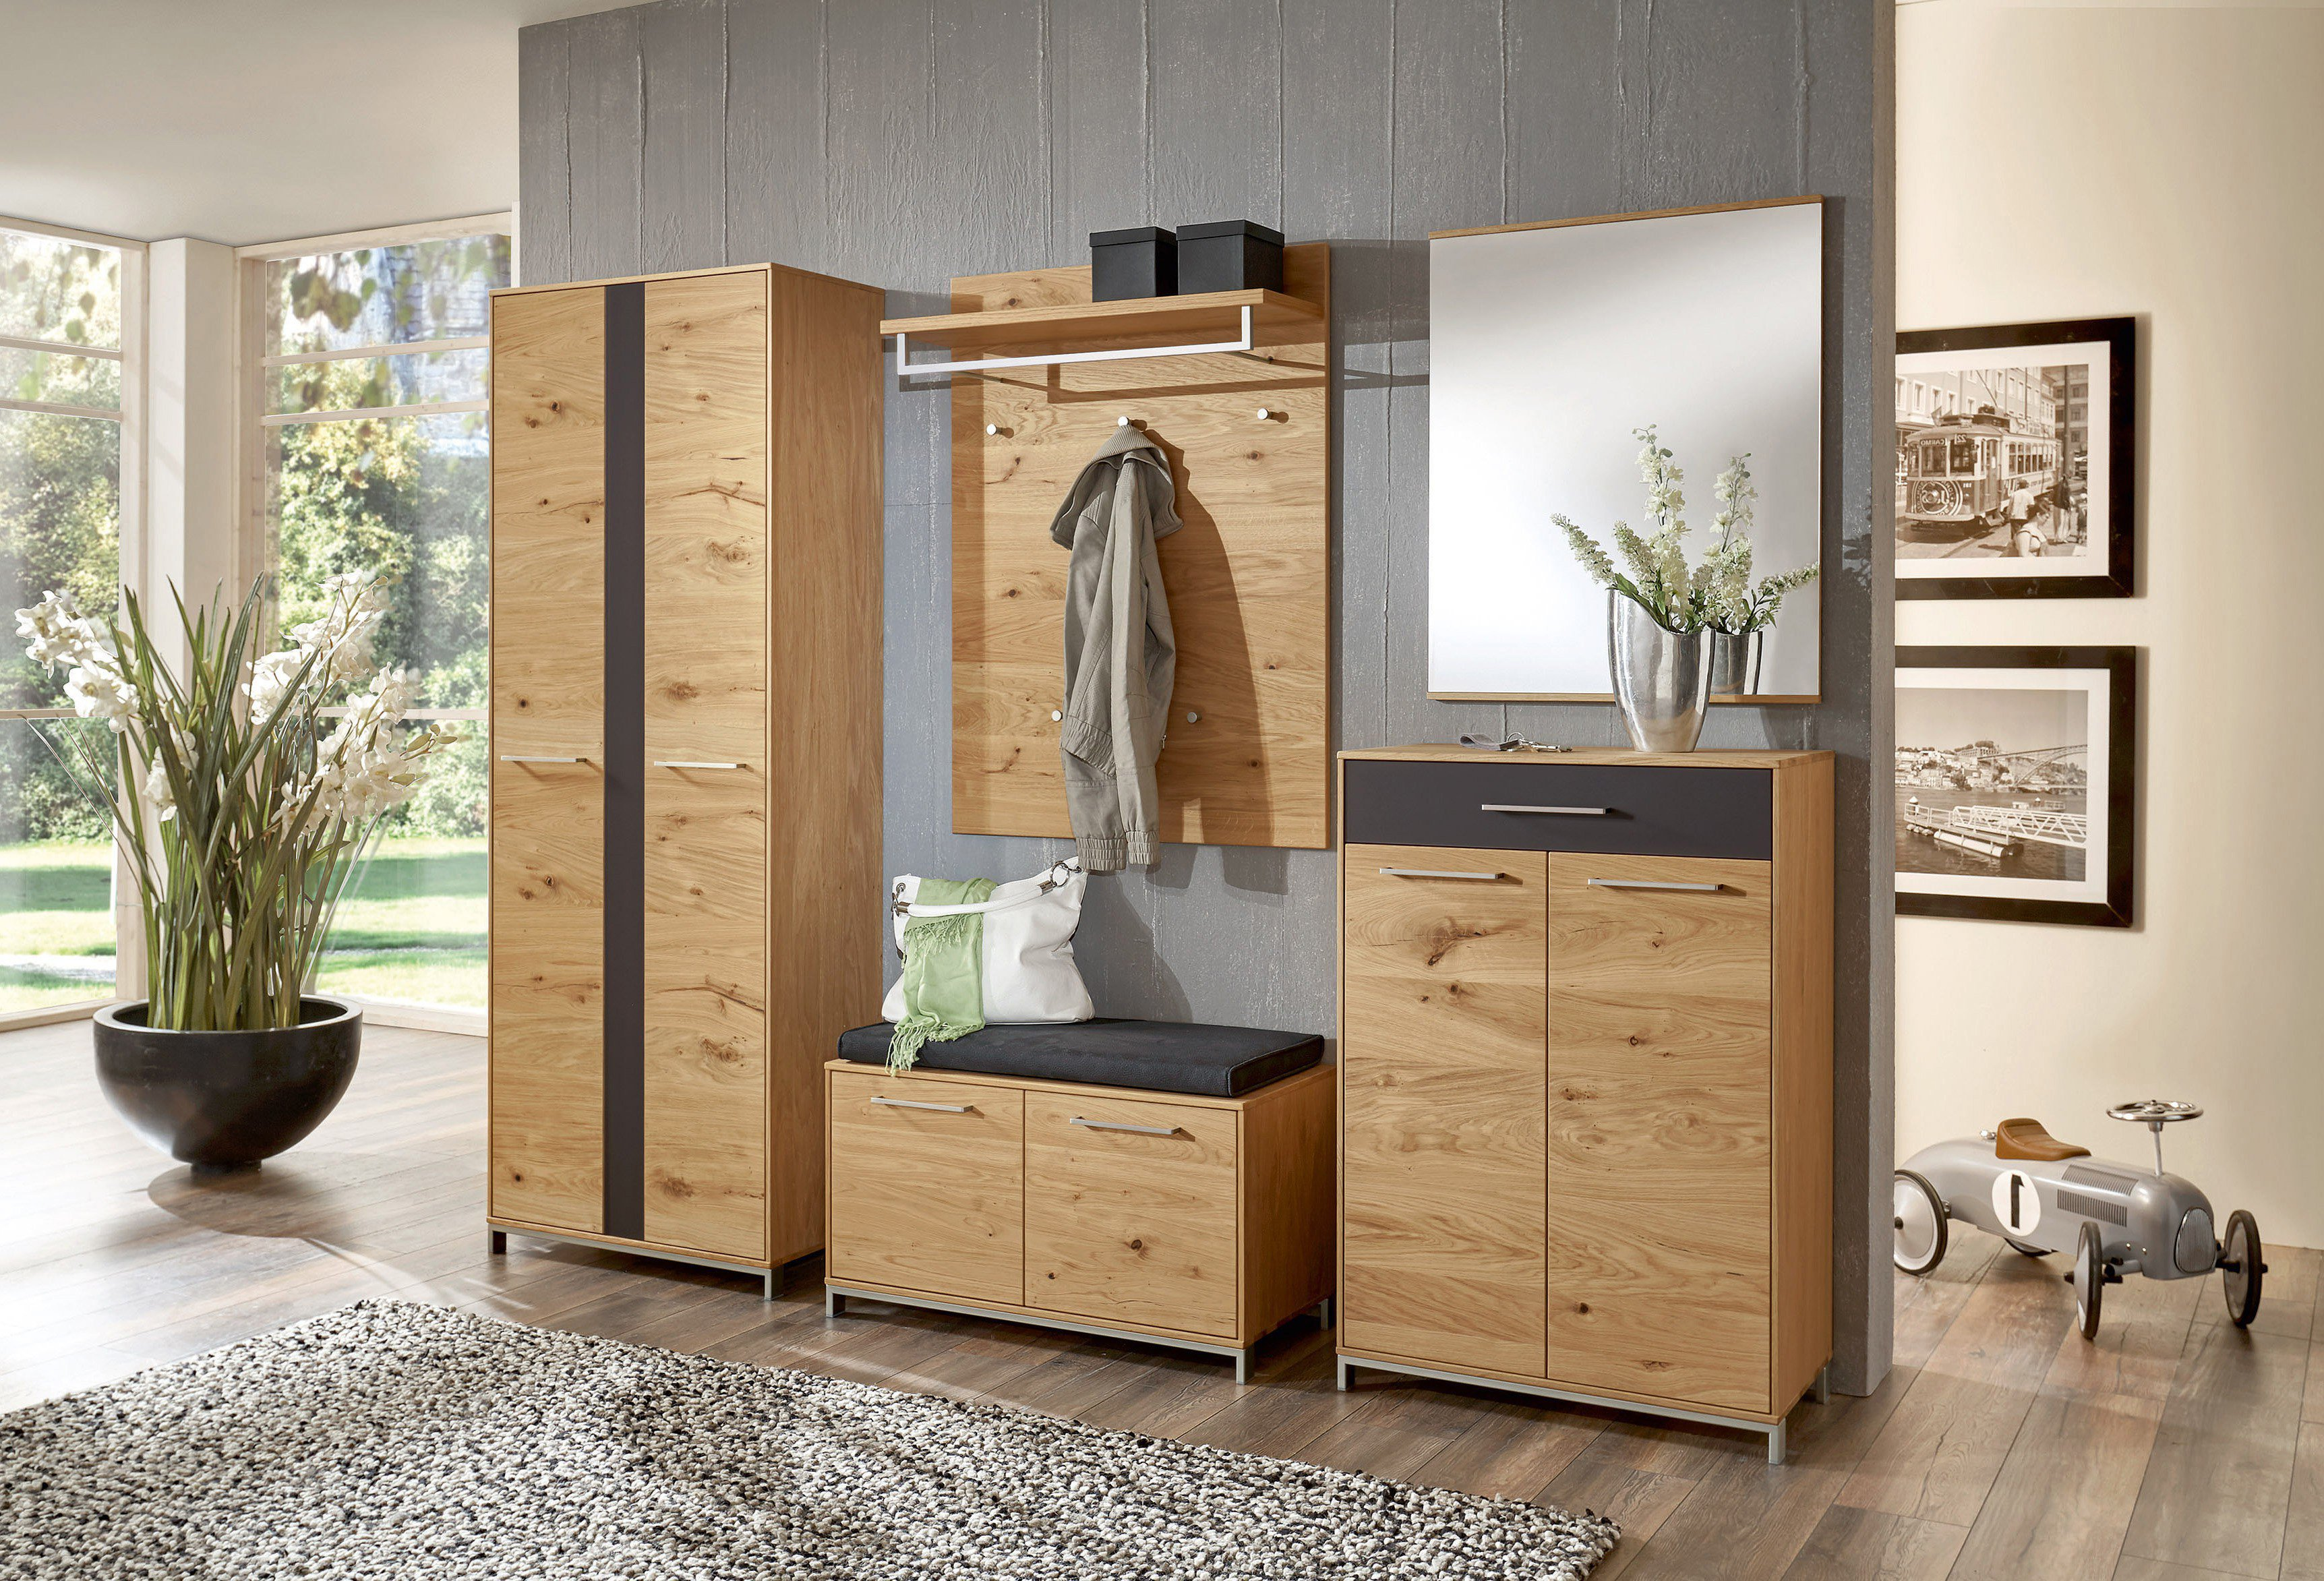 voss garderobe vedo eiche anthrazit m bel letz ihr online shop. Black Bedroom Furniture Sets. Home Design Ideas